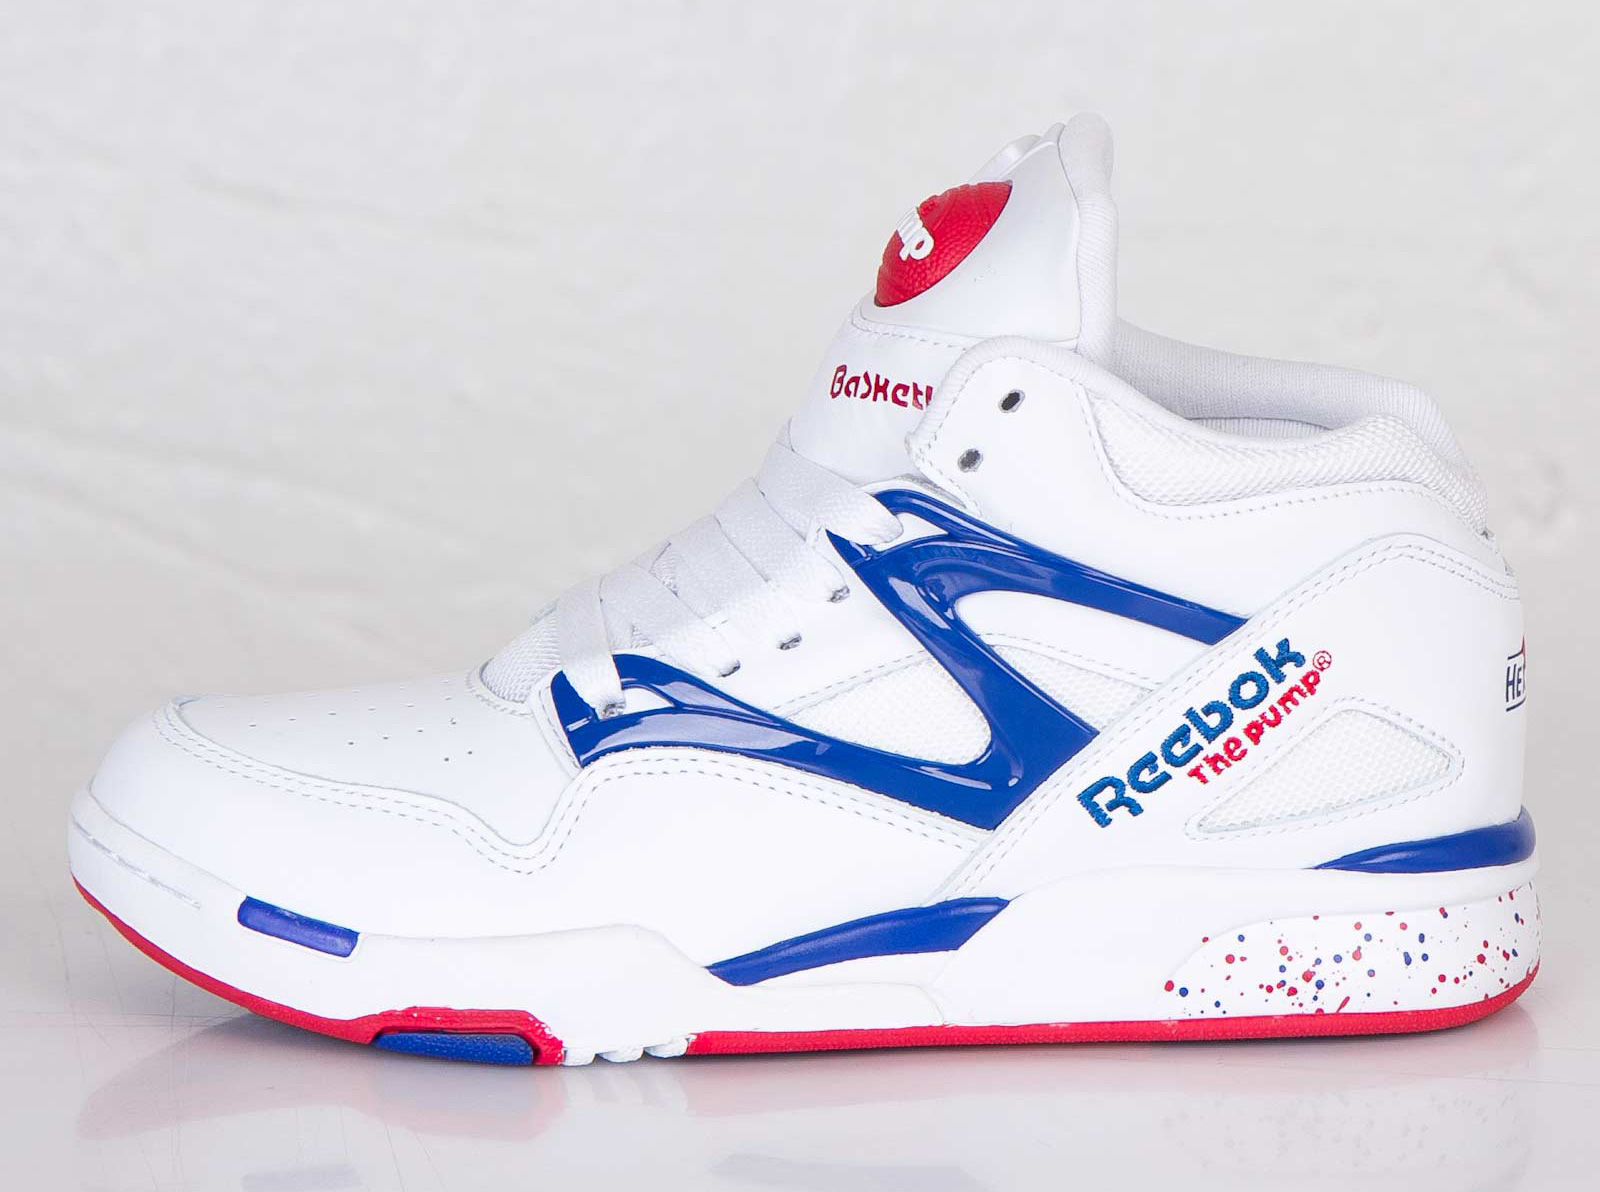 nike reebok Reebok shoes have been around for ages whether you need reebok pump shoes or reebok classic sneakers, we have what you need here at our outlet.